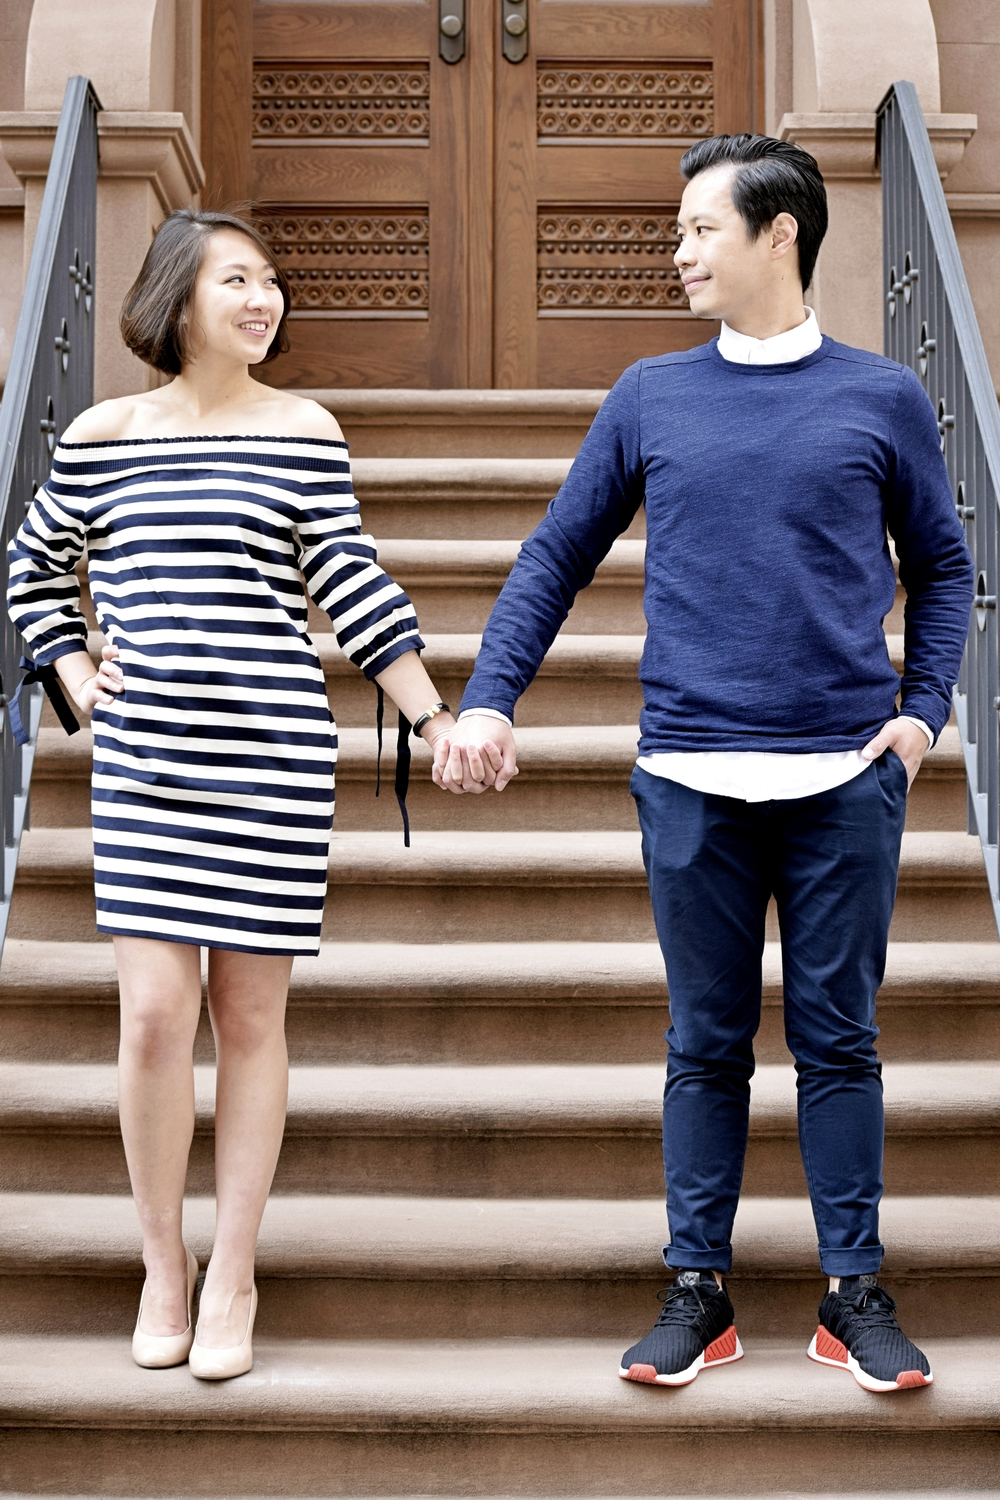 City Chic Engagement Photography Townhouse NYC